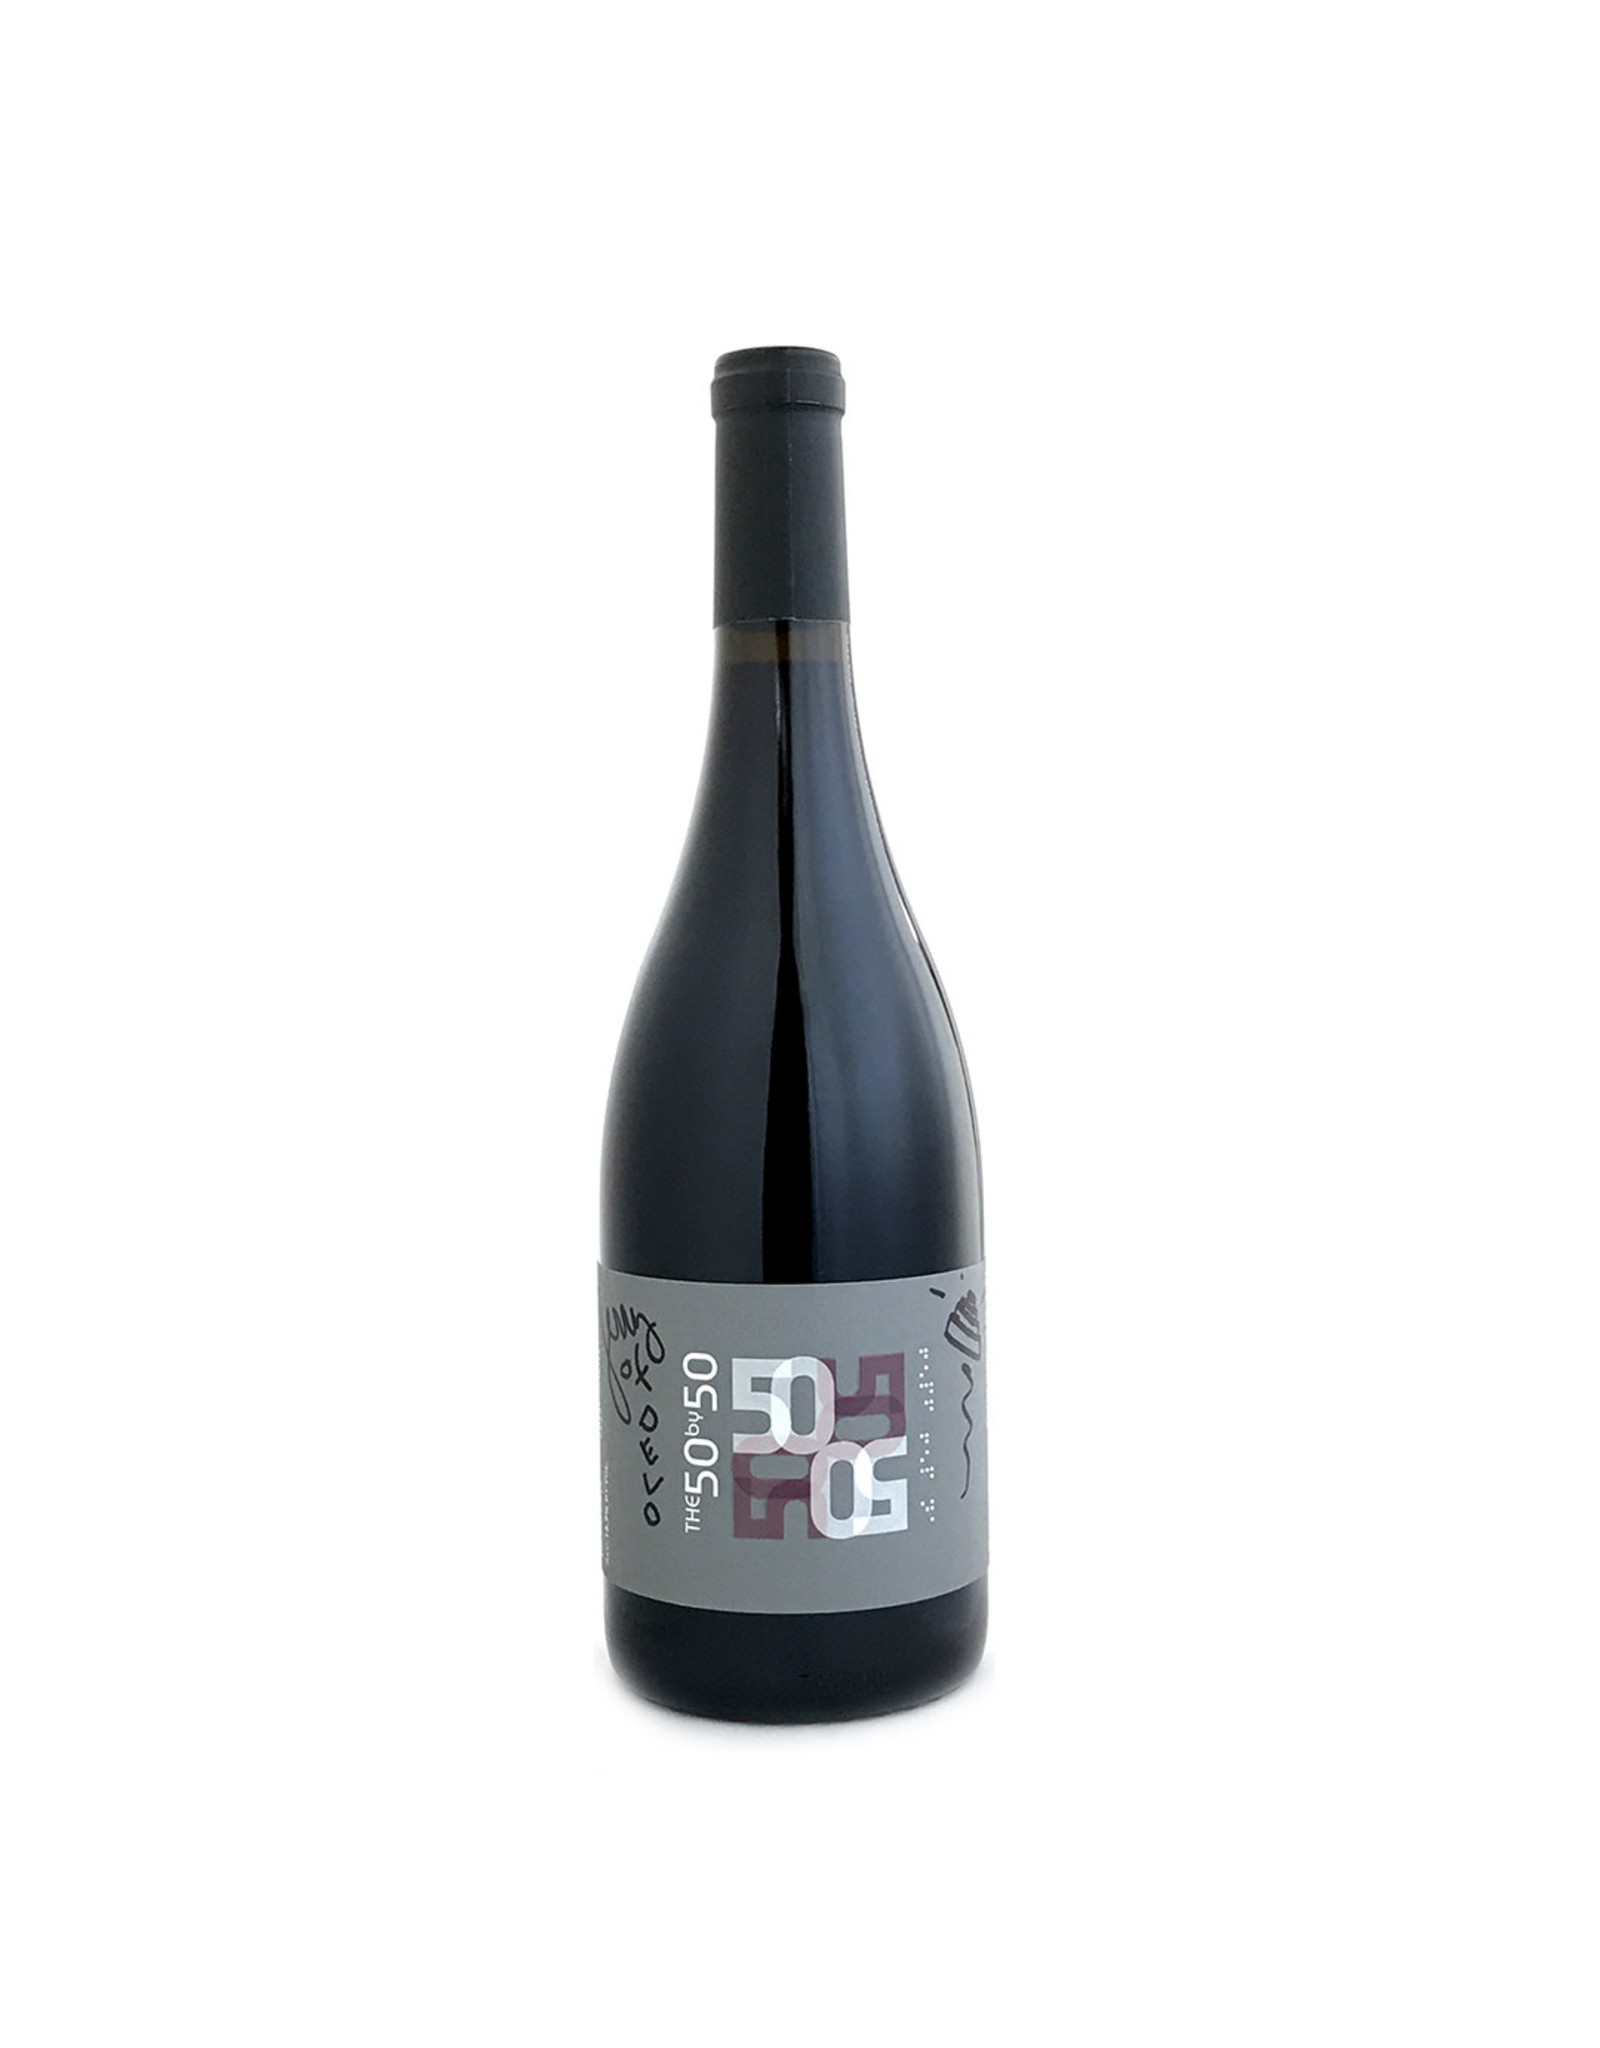 50 by 50 / Devo AUTOGRAPHED The  50 by 50 Pinot Noir Rodgers Creek Sonoma Coast 2017 AUTOGRAPHED